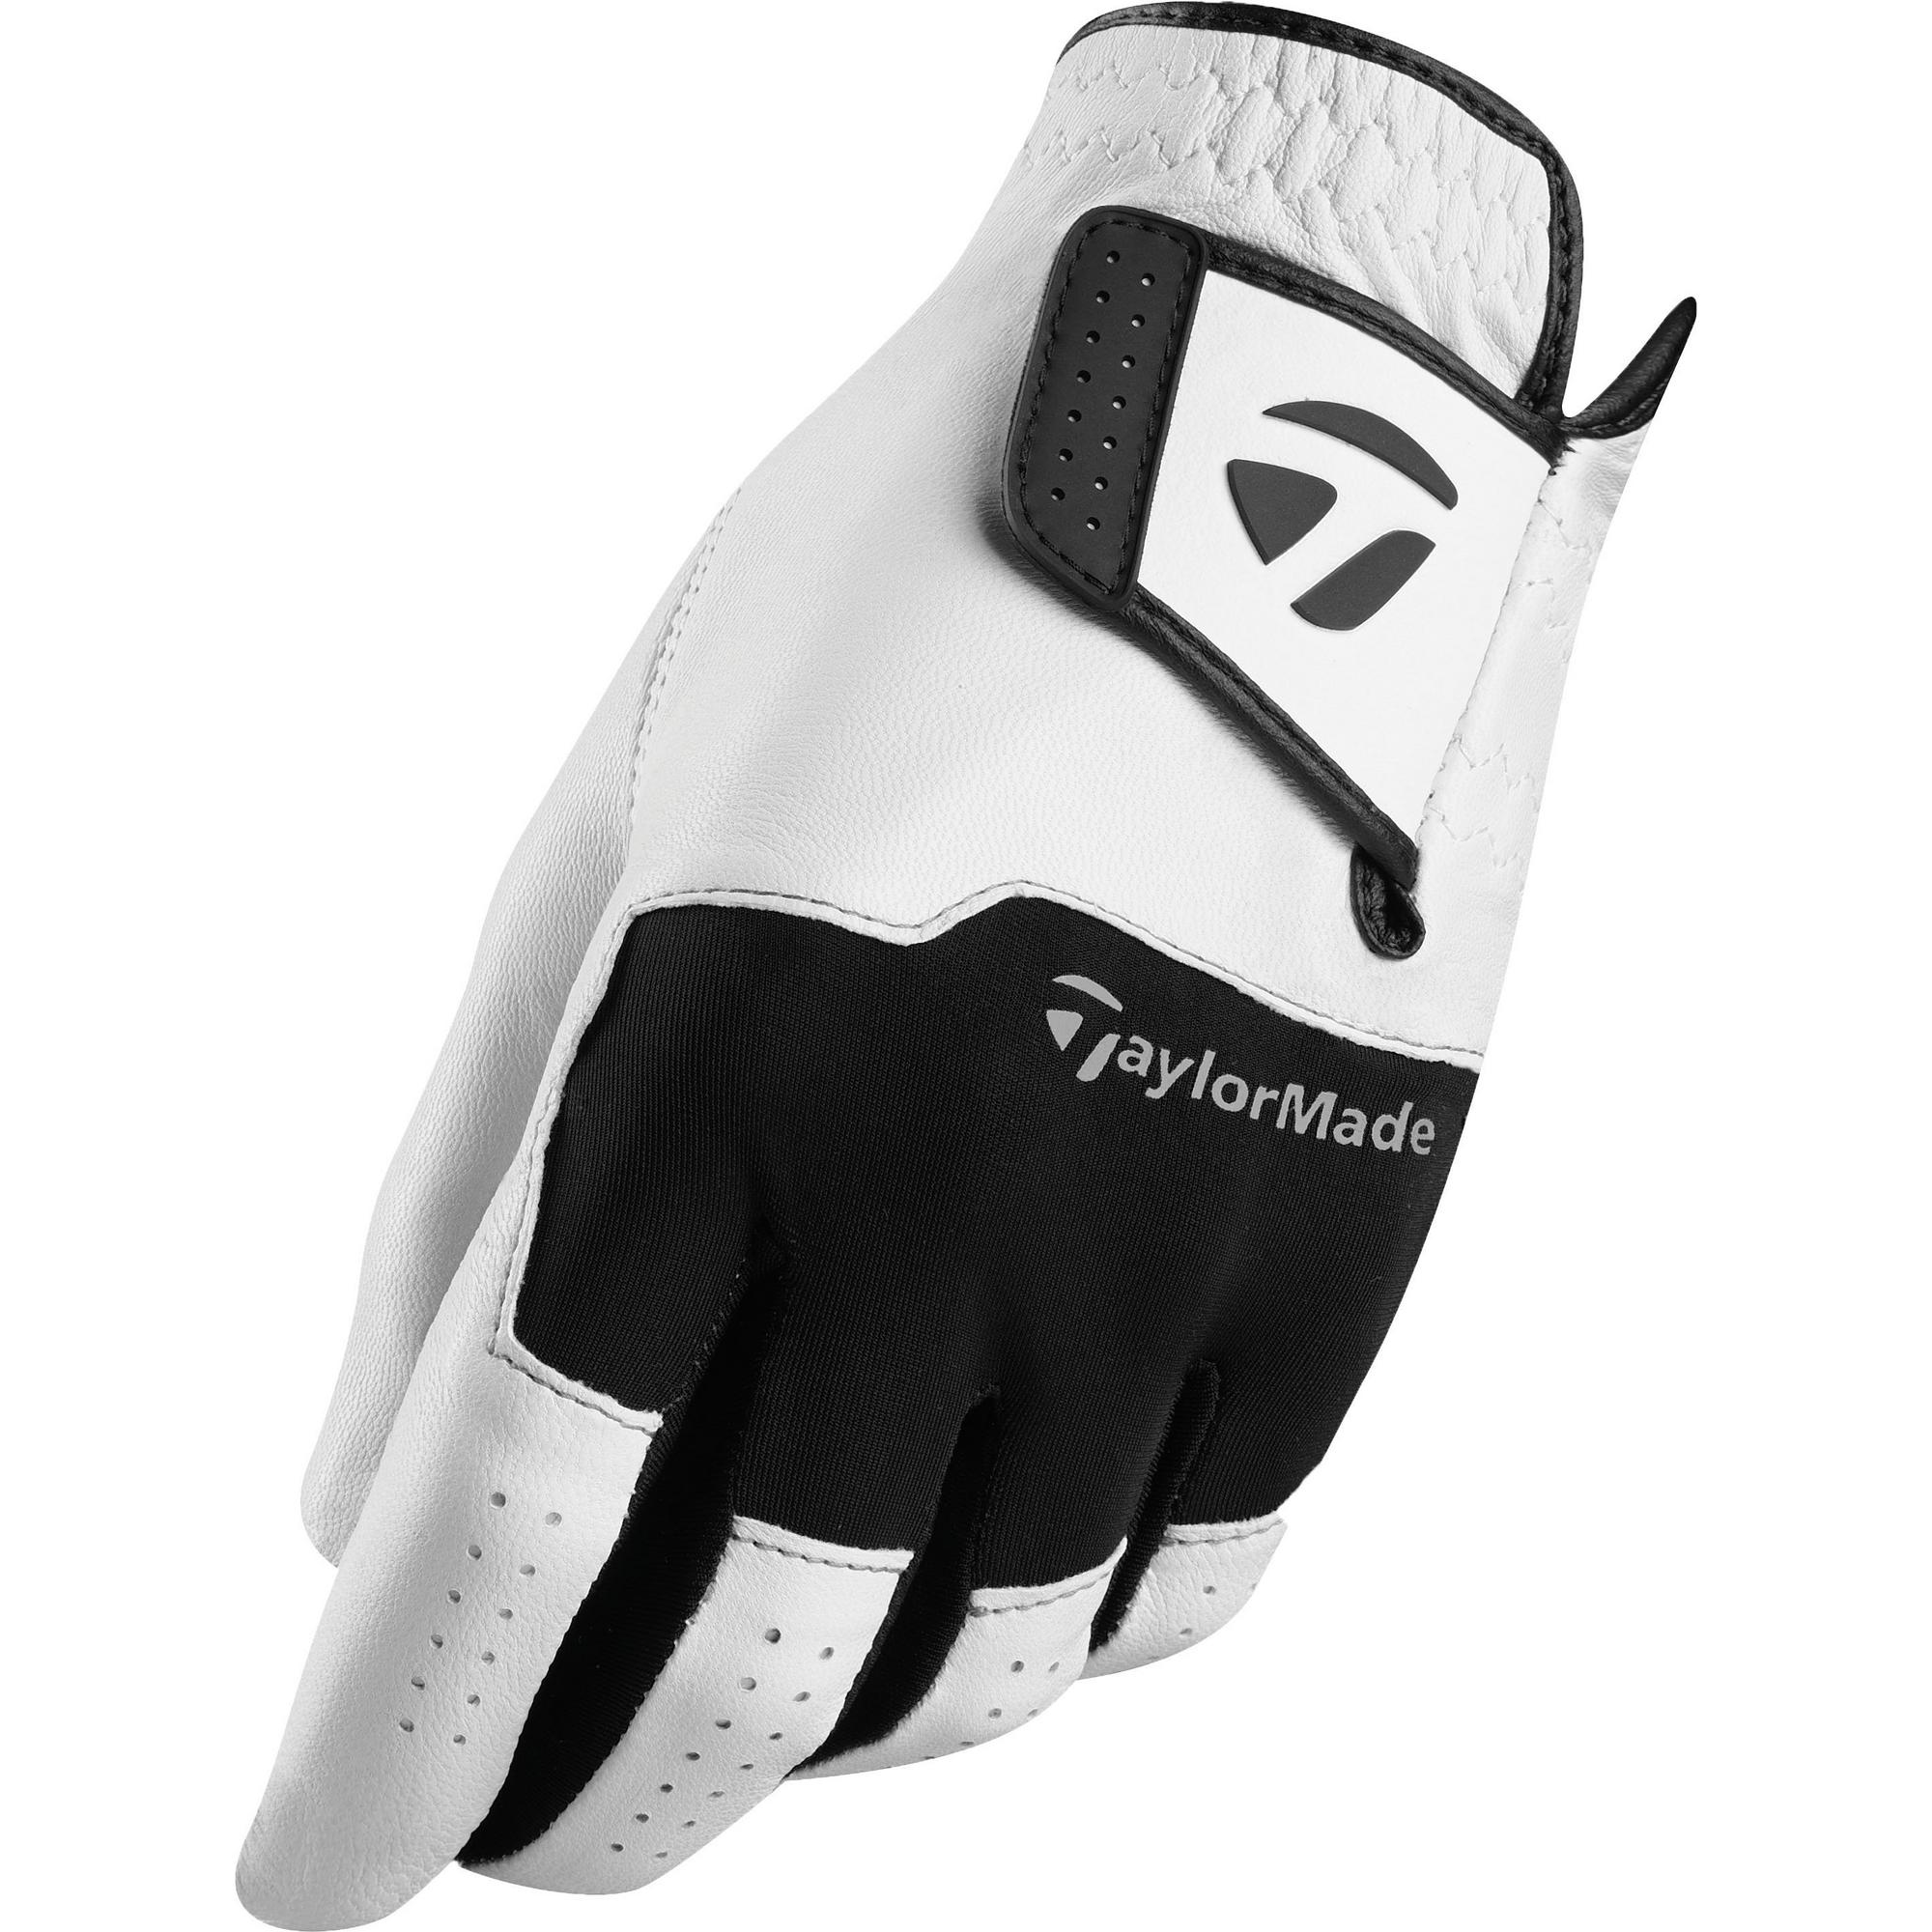 Taylormade Stratus Leather Golf Glove - Right Hand